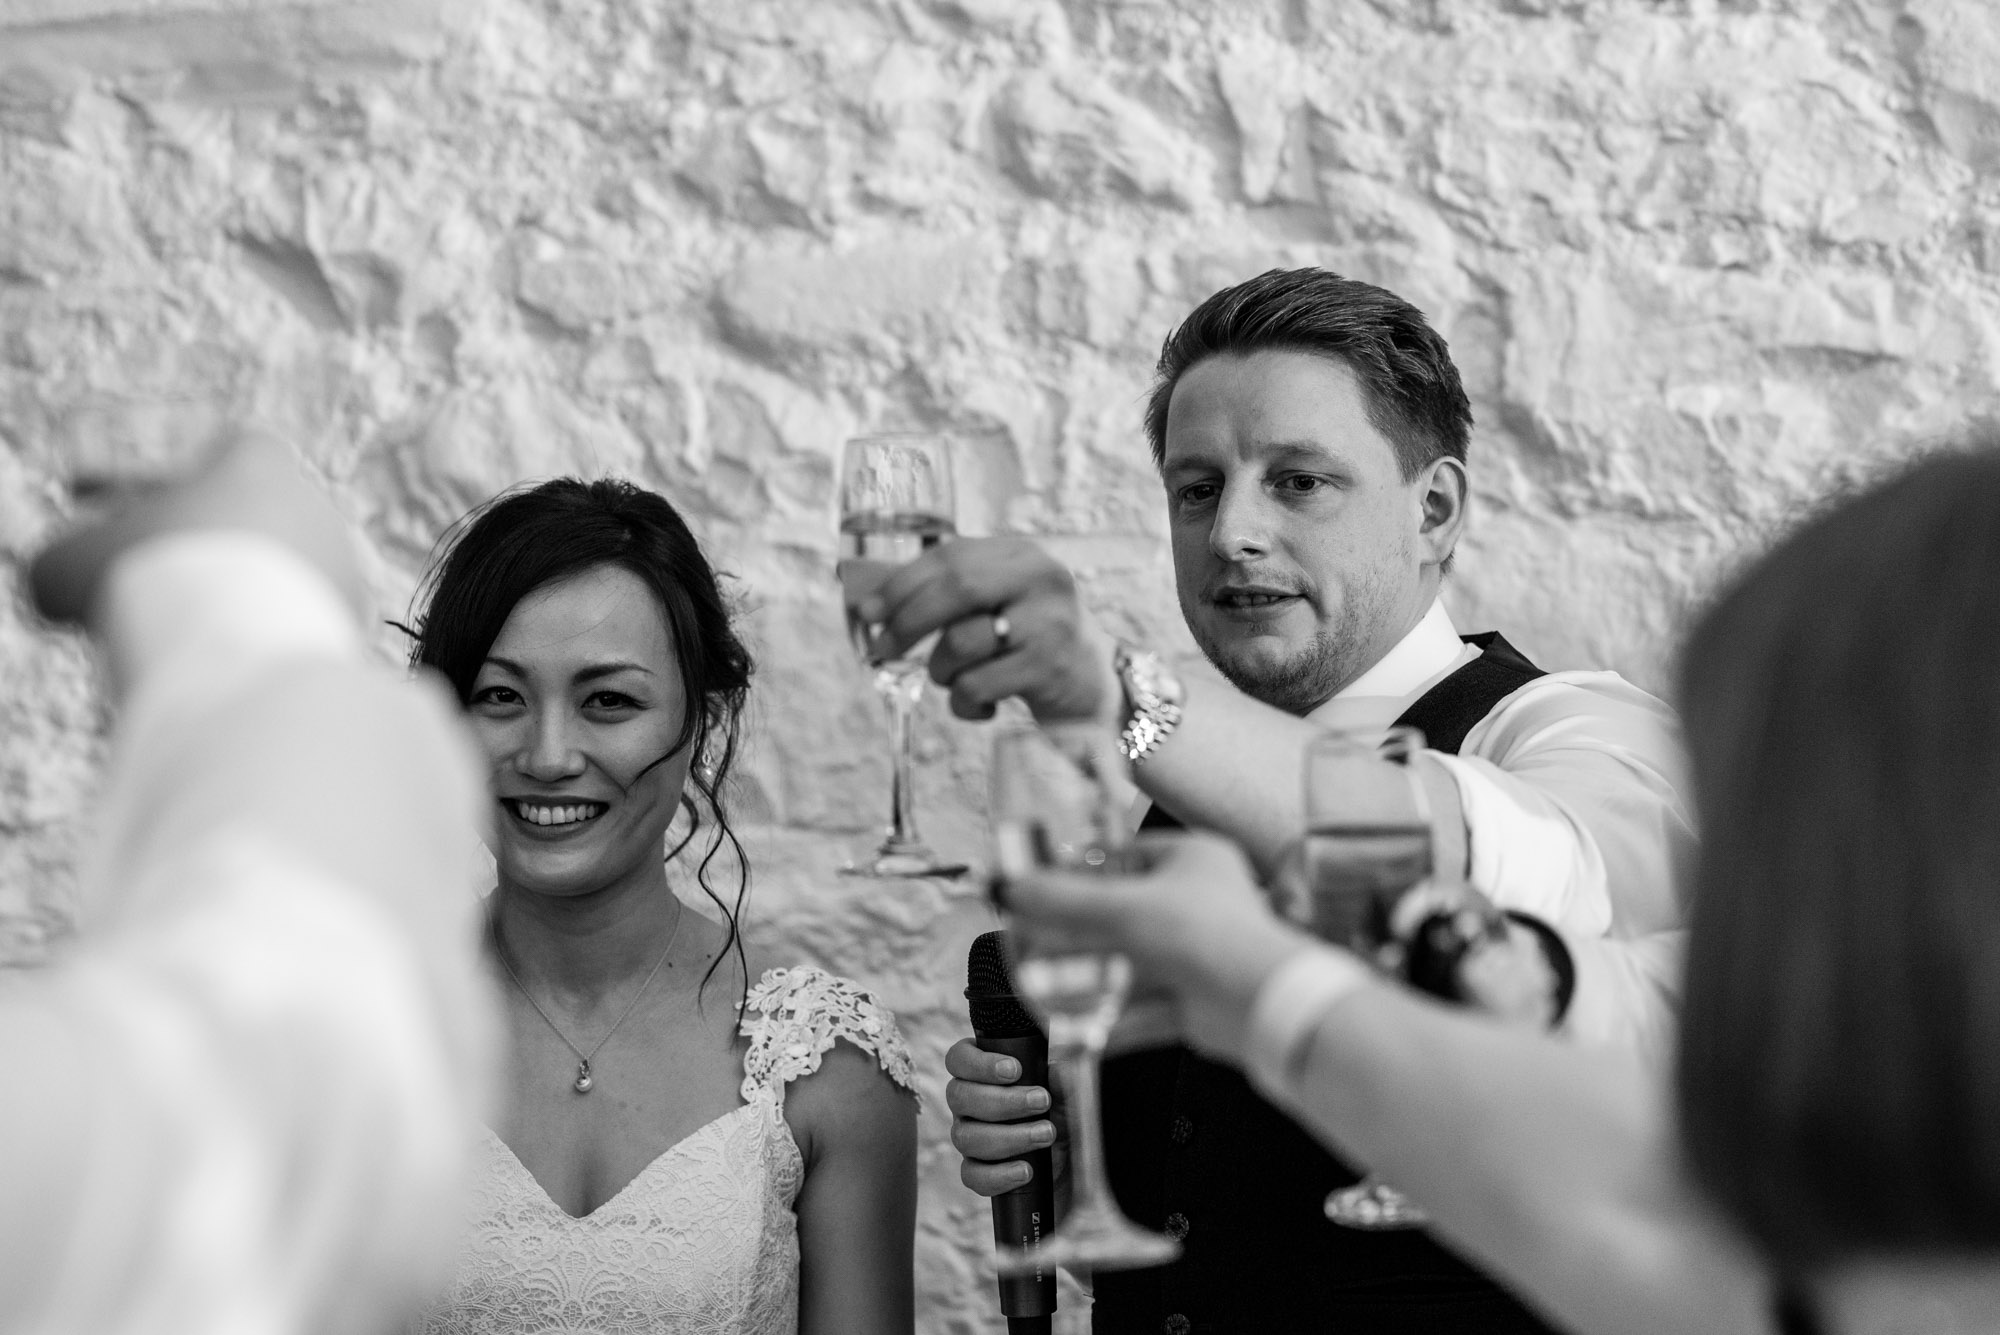 The bride and groom share a toast during the wedding speeches.